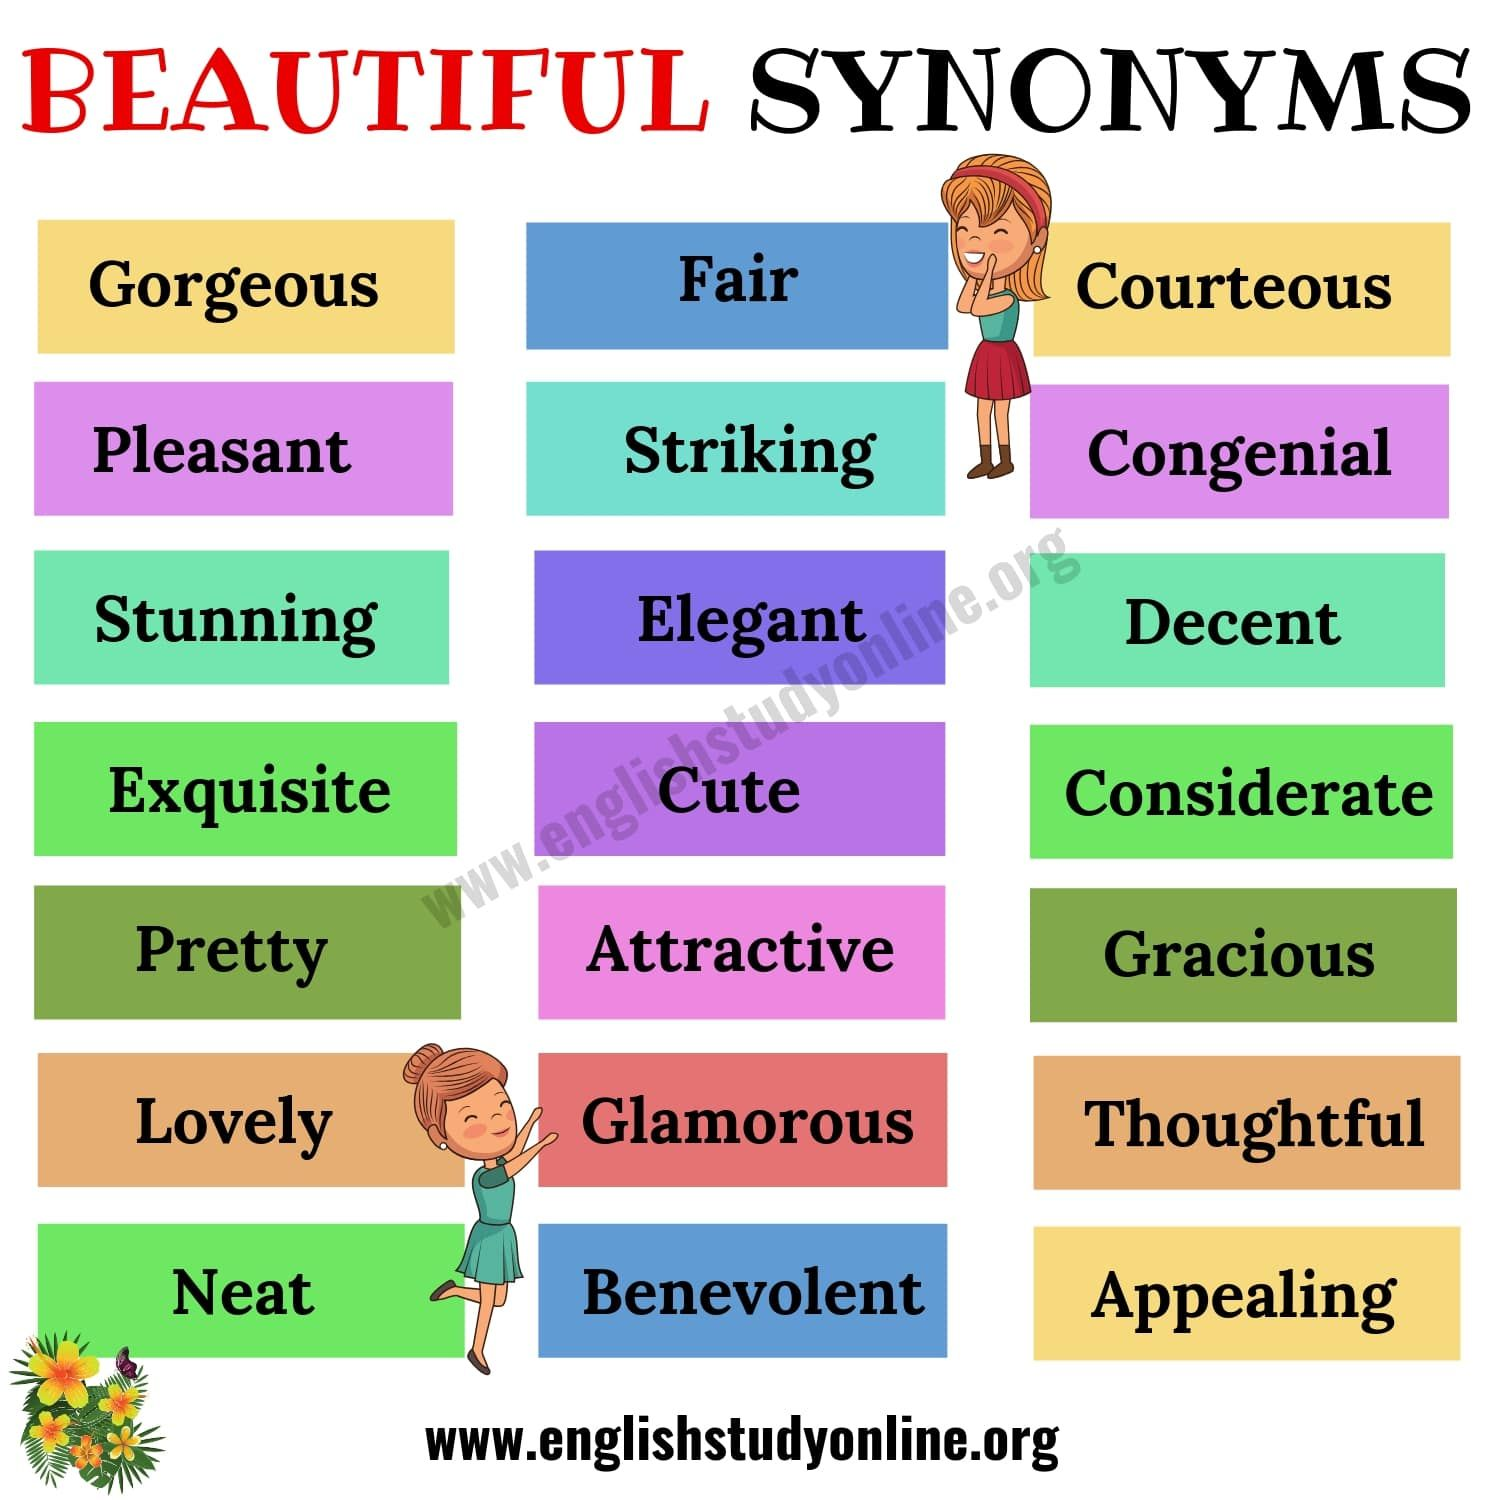 Beautiful Synonyms List Of 30 Helpful Synonyms For Beautiful English Study Online Writing Words Learn English Words Overused Words